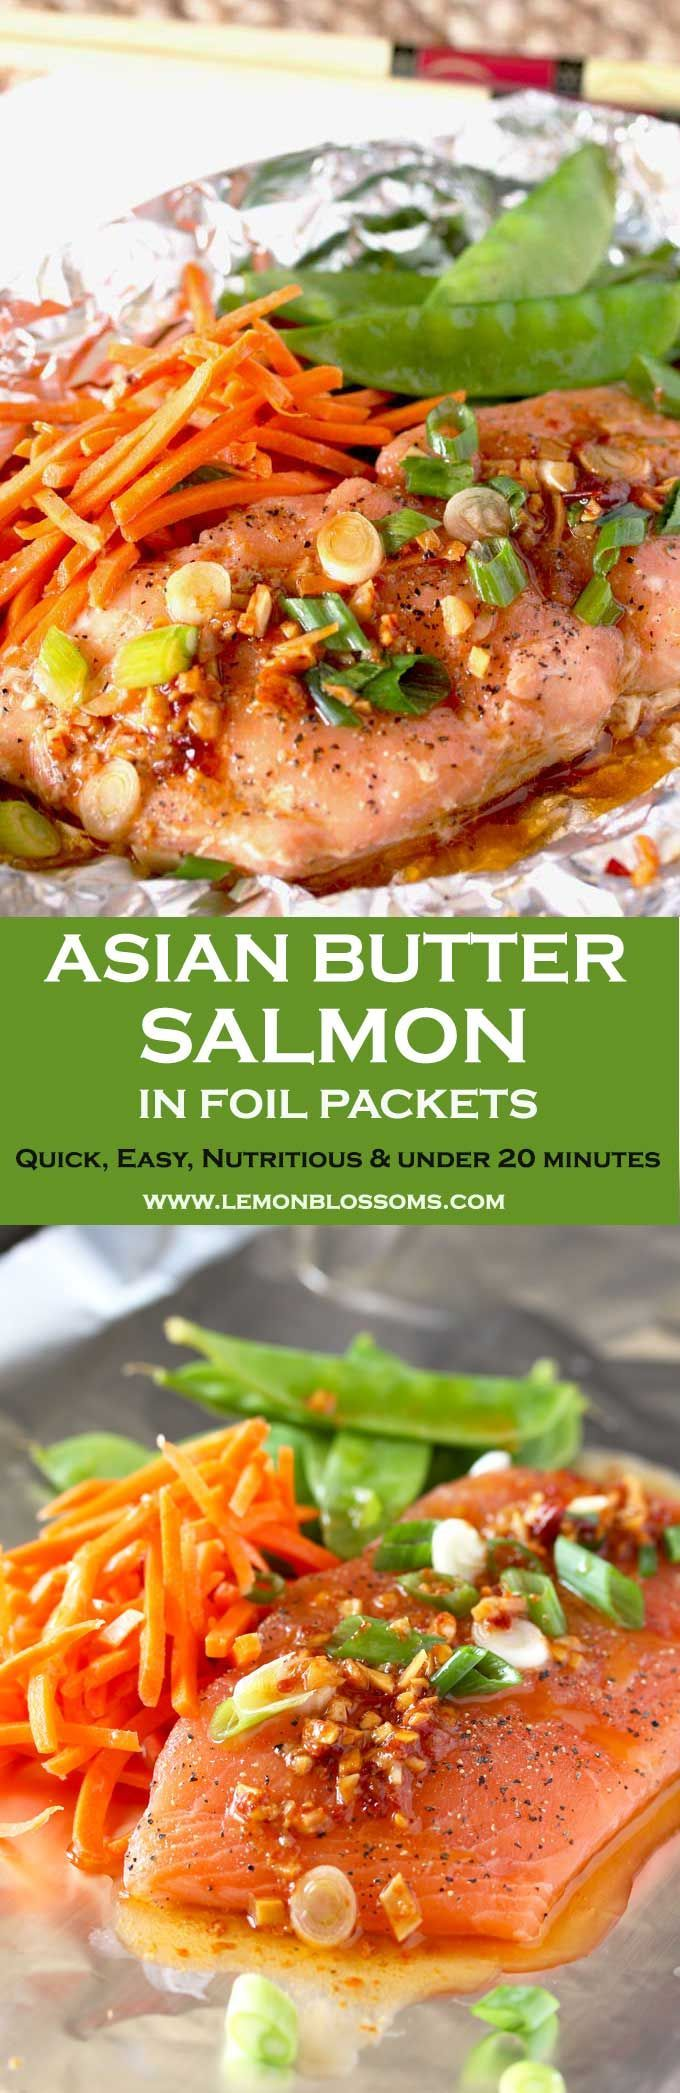 This Asian Butter Salmon is packed with Asian flavors! Light, easy, nutritious and ready in under 20 minutes! Simple ingredients and little clean up! #salmon #fish #cookinginfoil #Asian #easyrecipe  via @lmnblossoms